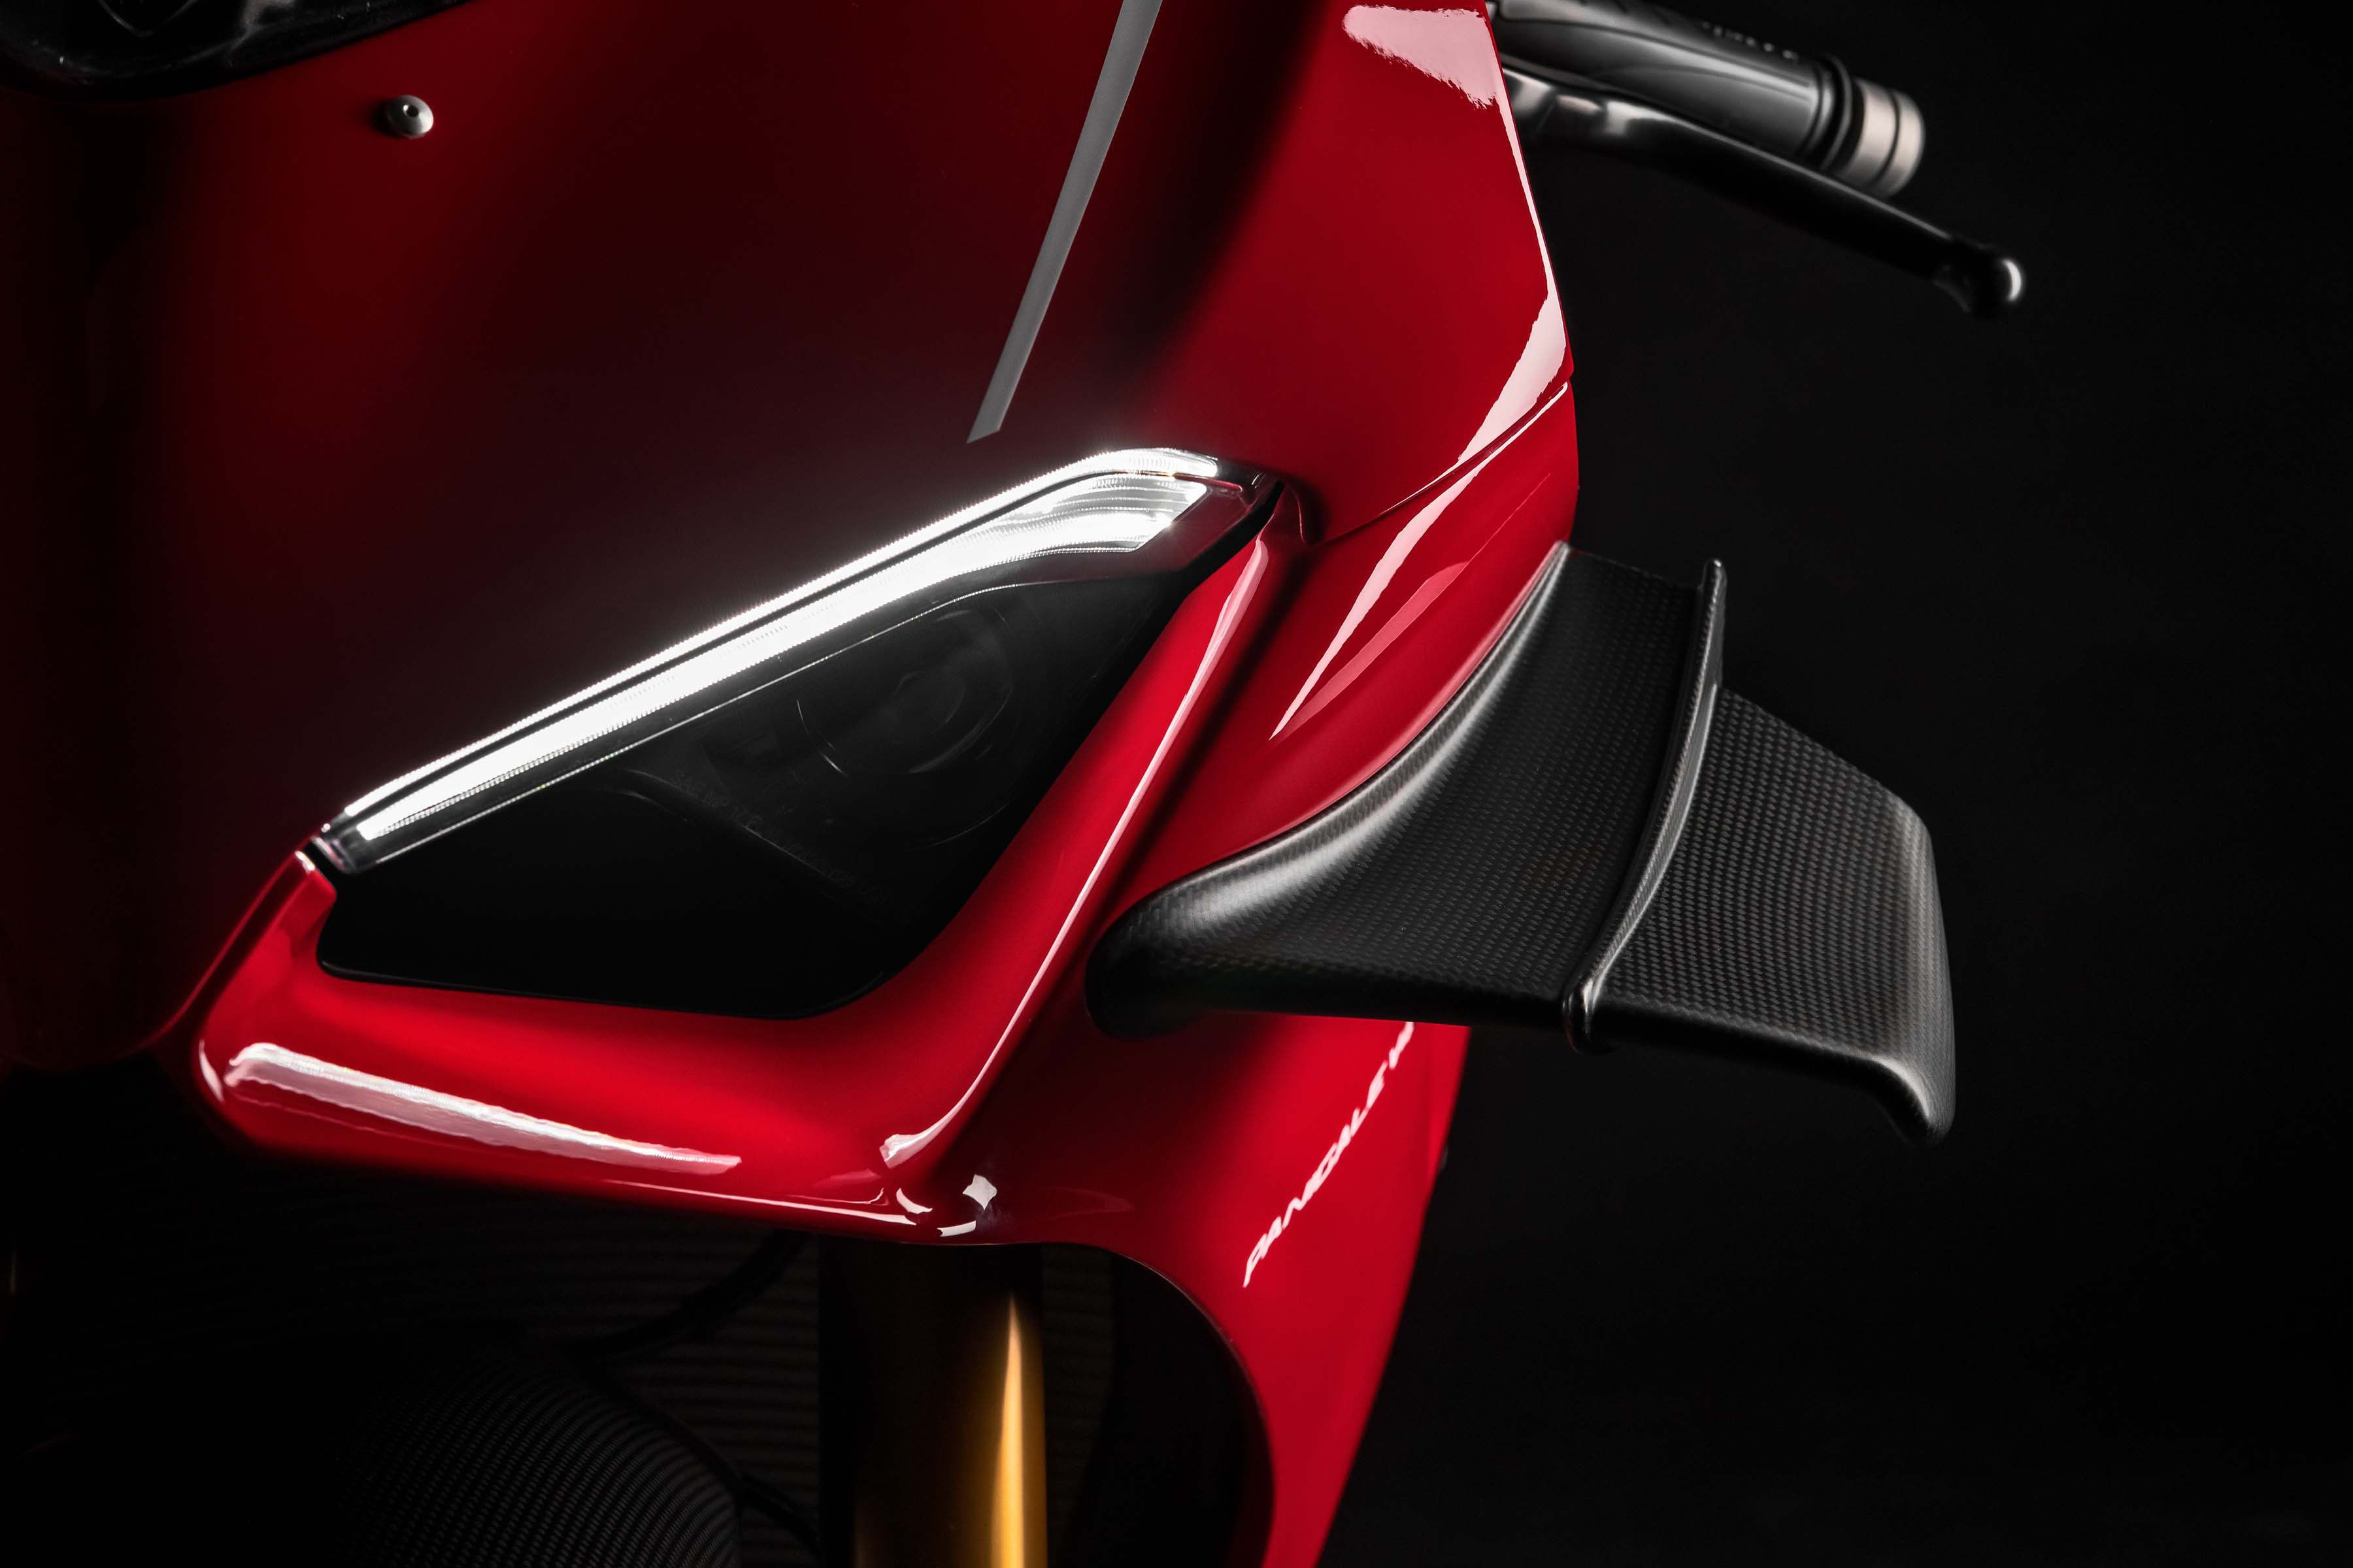 Ducati Panigale V4 R Debuts With 217hp Wings More Ducati